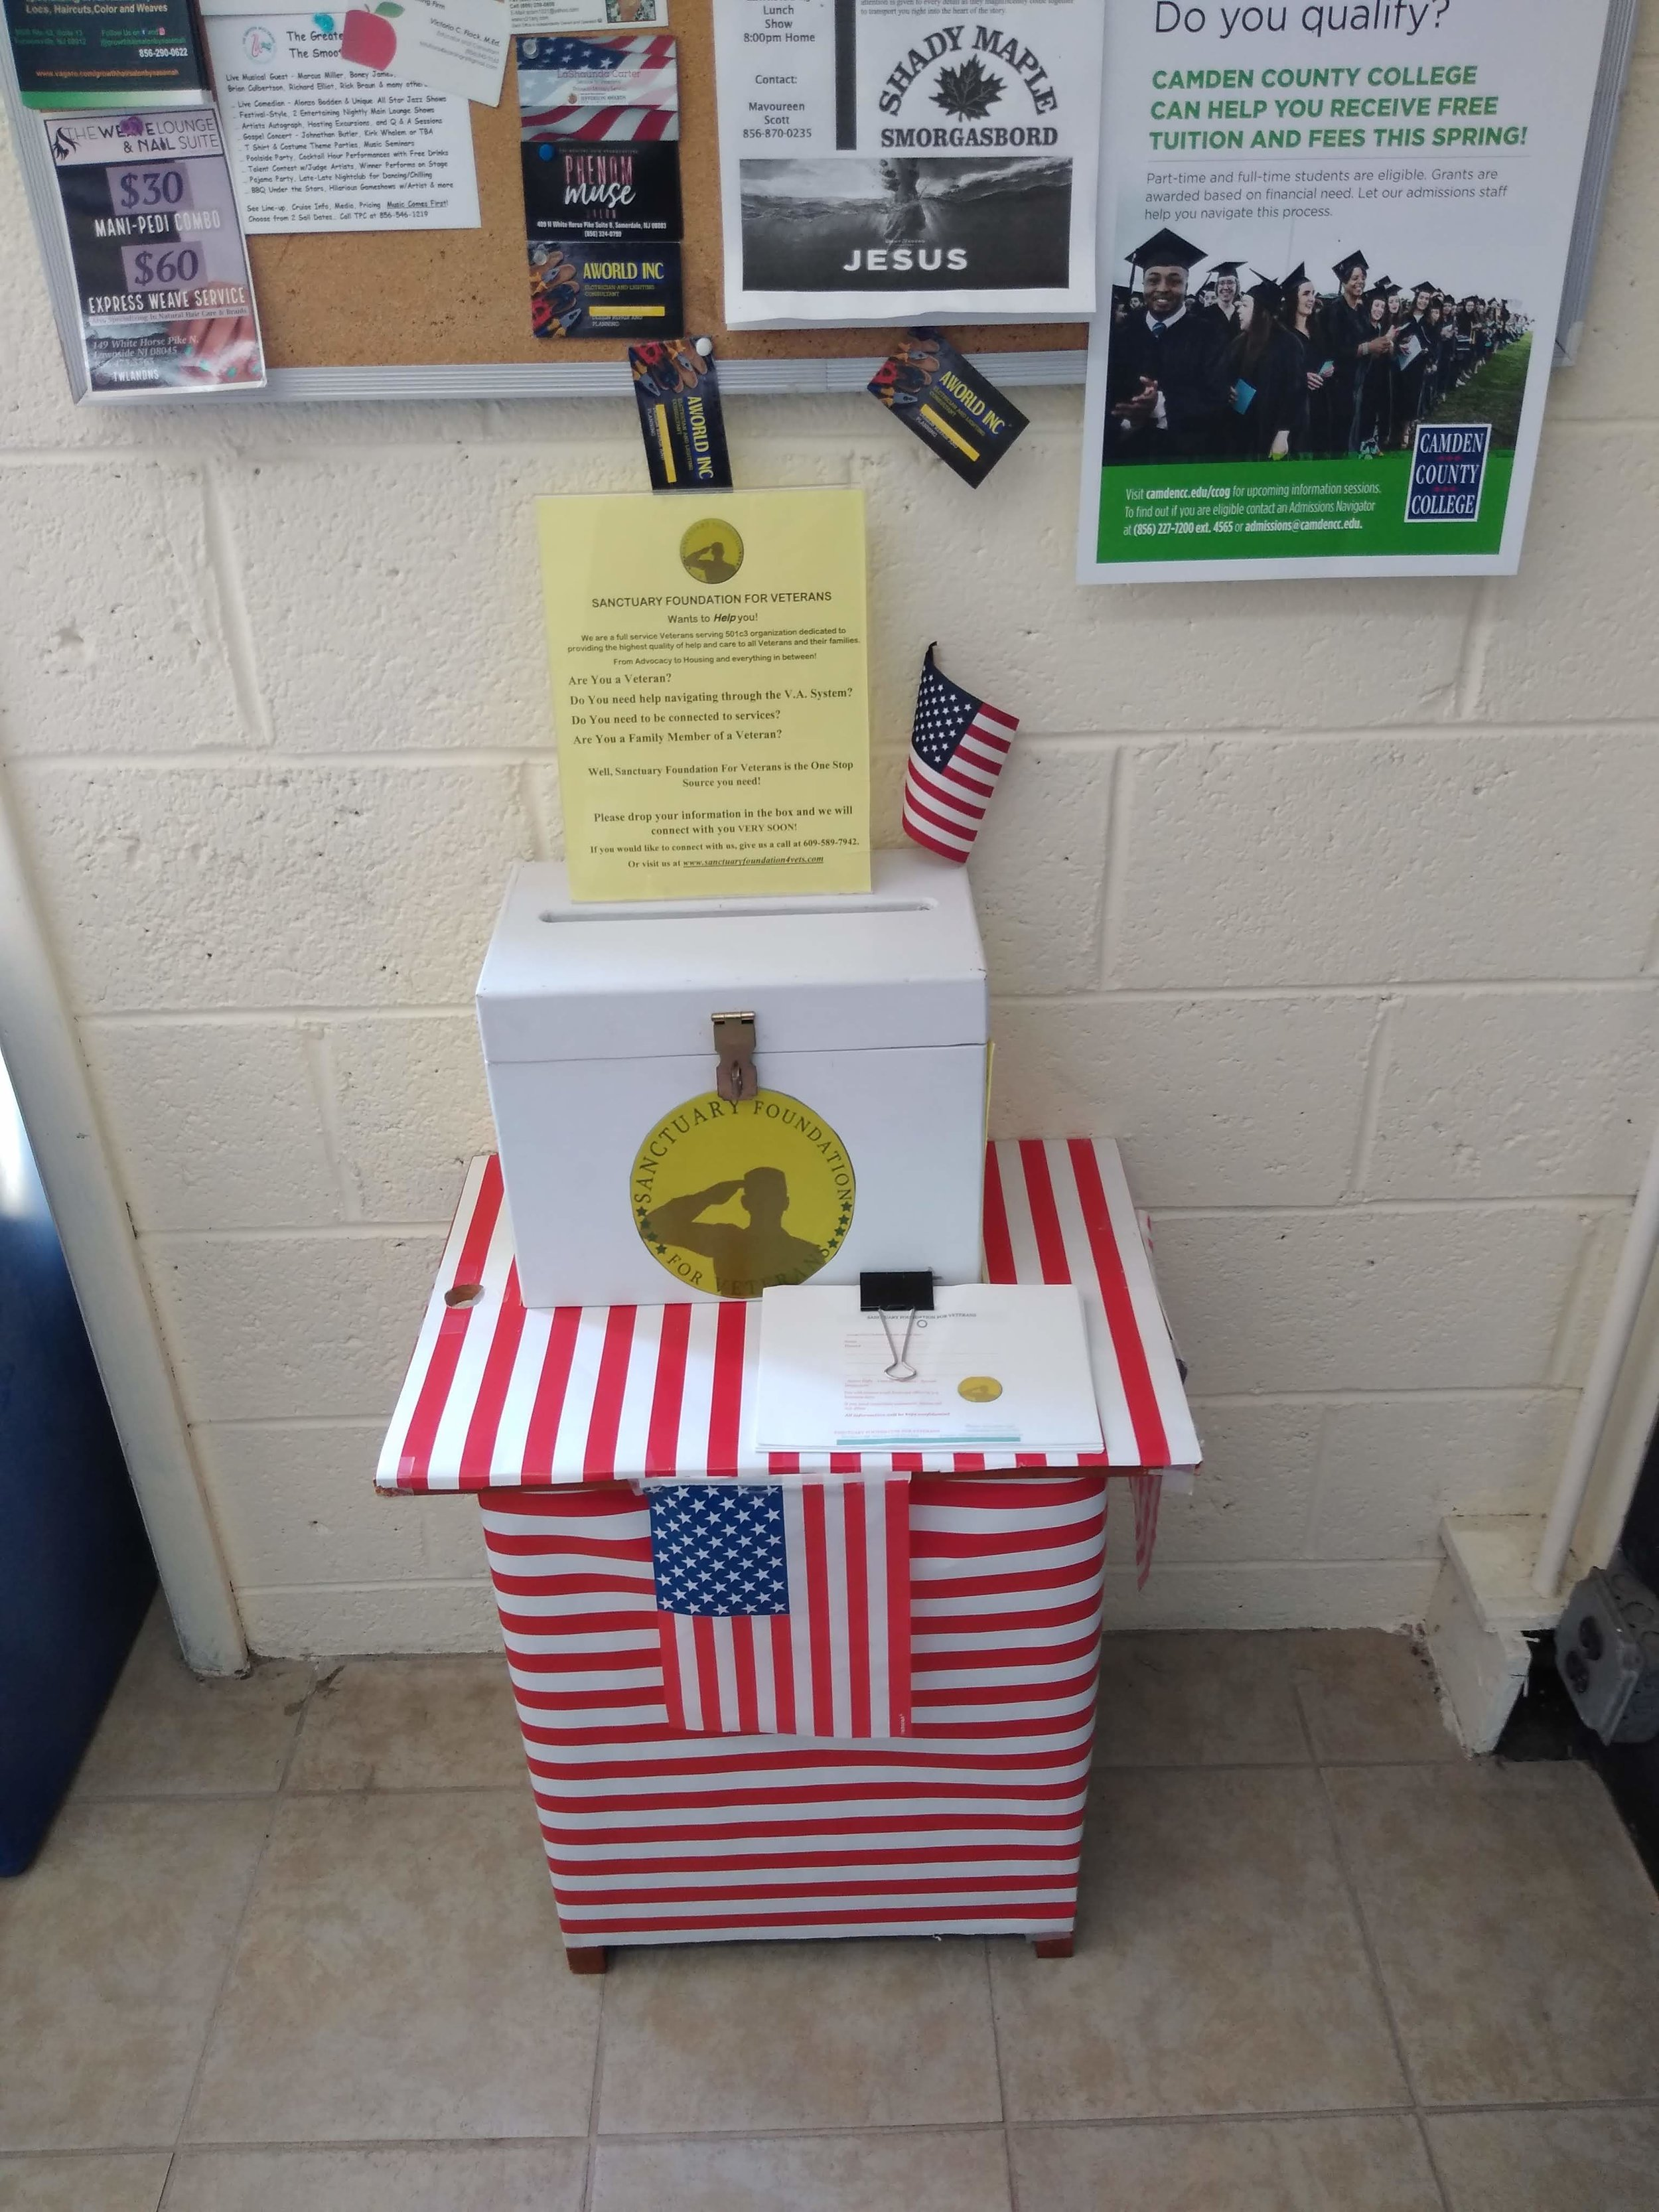 Sanctuary Foundation Connections Box Placed in Lawnside, NJ Post Office -